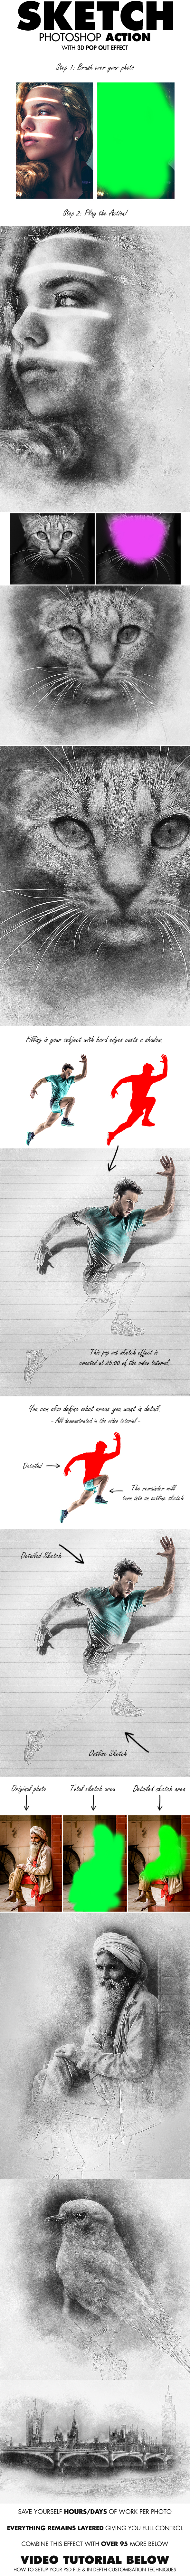 Sketch Photoshop Action (With 3D Pop Out Effect) - Photo Effects Actions